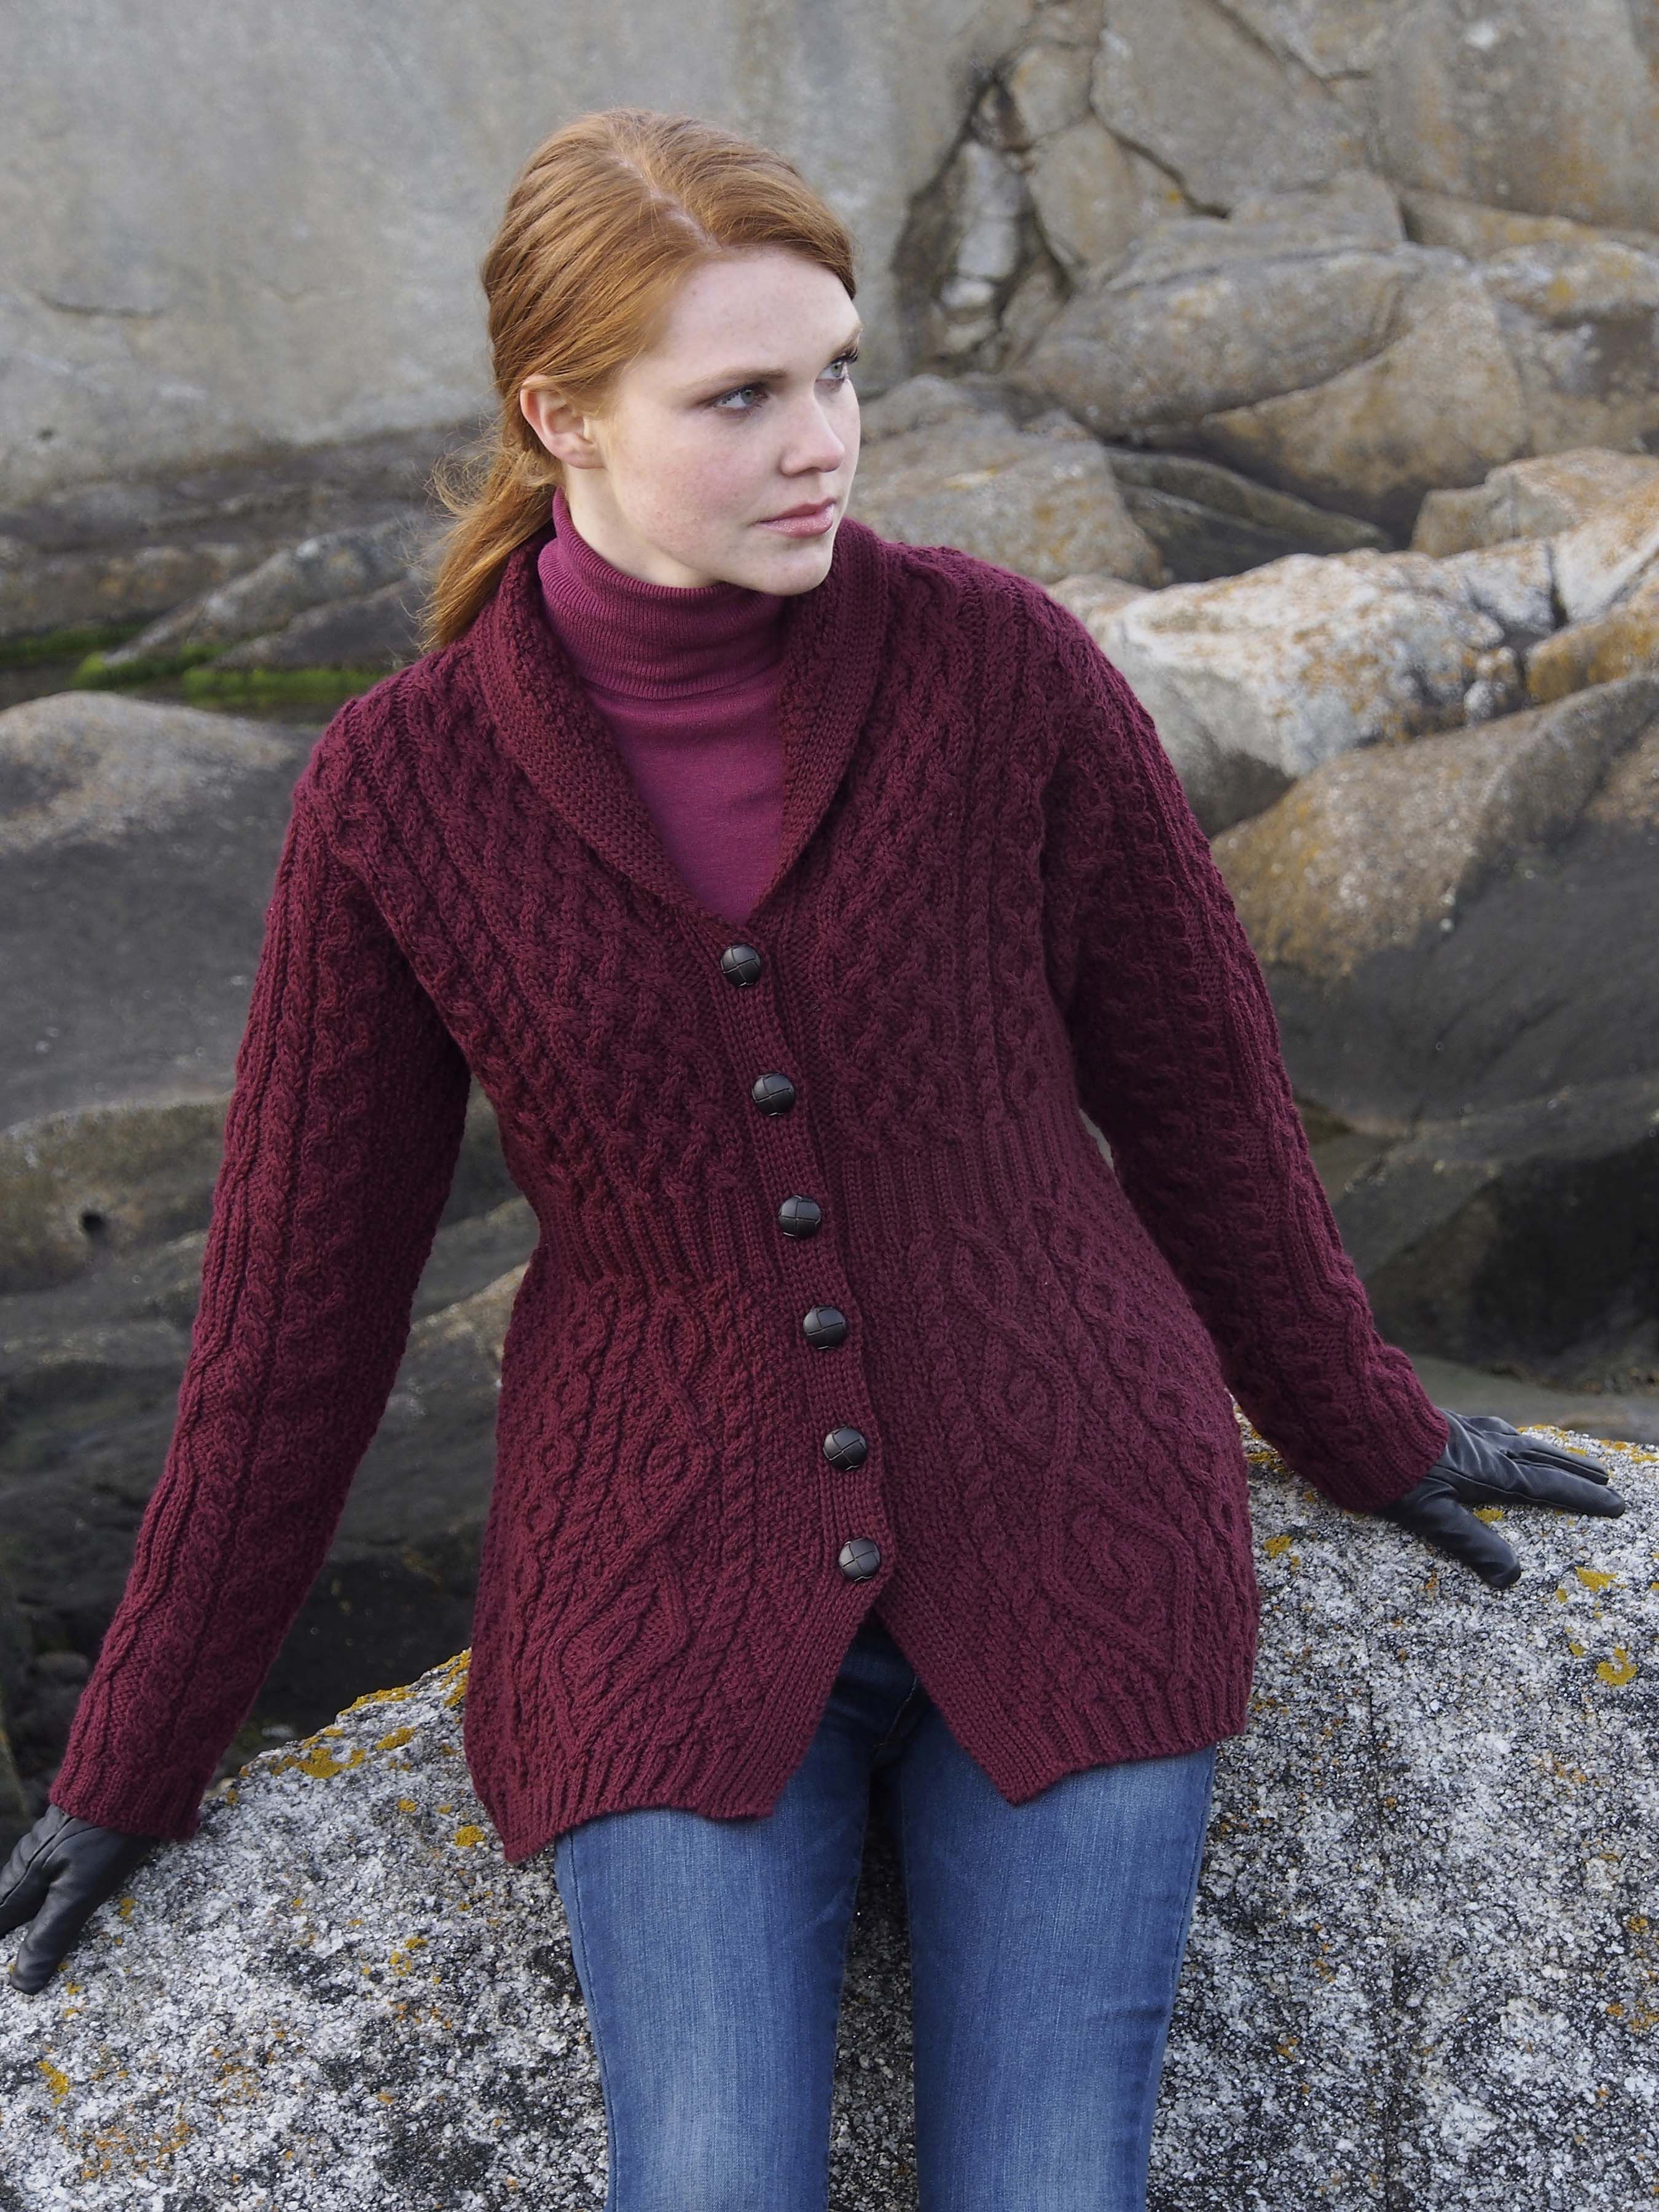 Shawl aran cardigan by natallia kulikouskaya for west end knitwear our wool shawl neck cardigan is made in ireland of oure new wool fashionable yet traditional aran cable knit shawl neck cardigan direct from aran sweater bankloansurffo Gallery